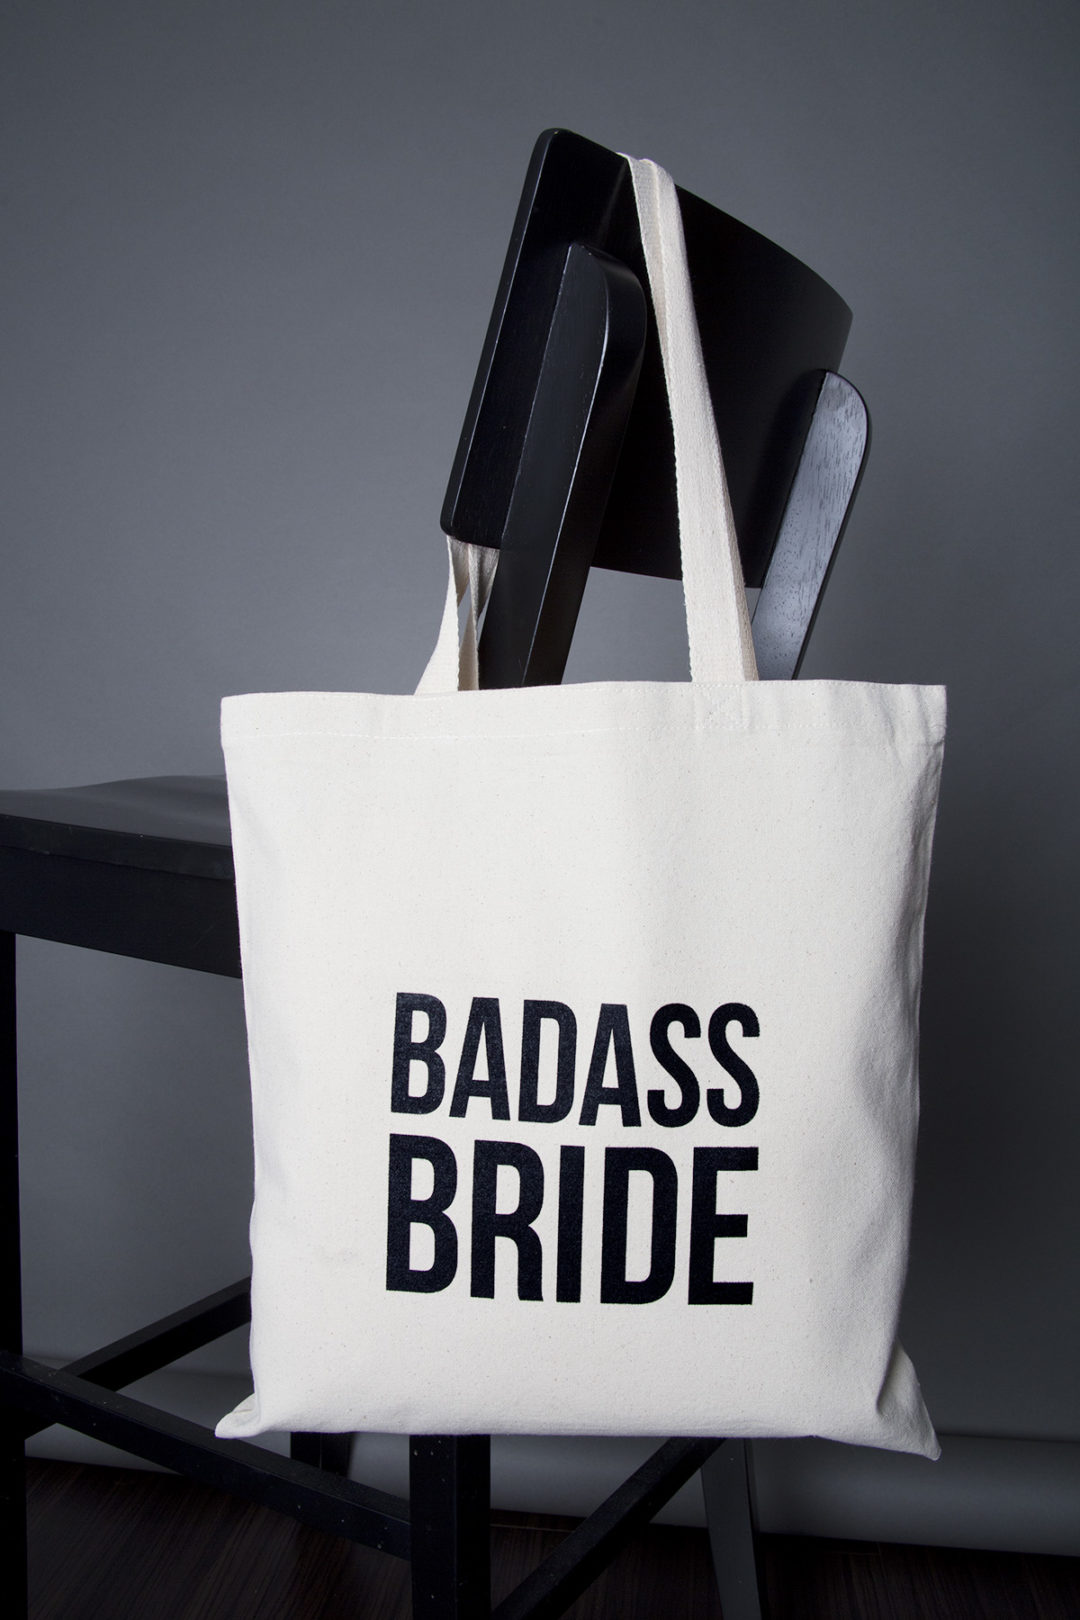 Badass Bride tote bag